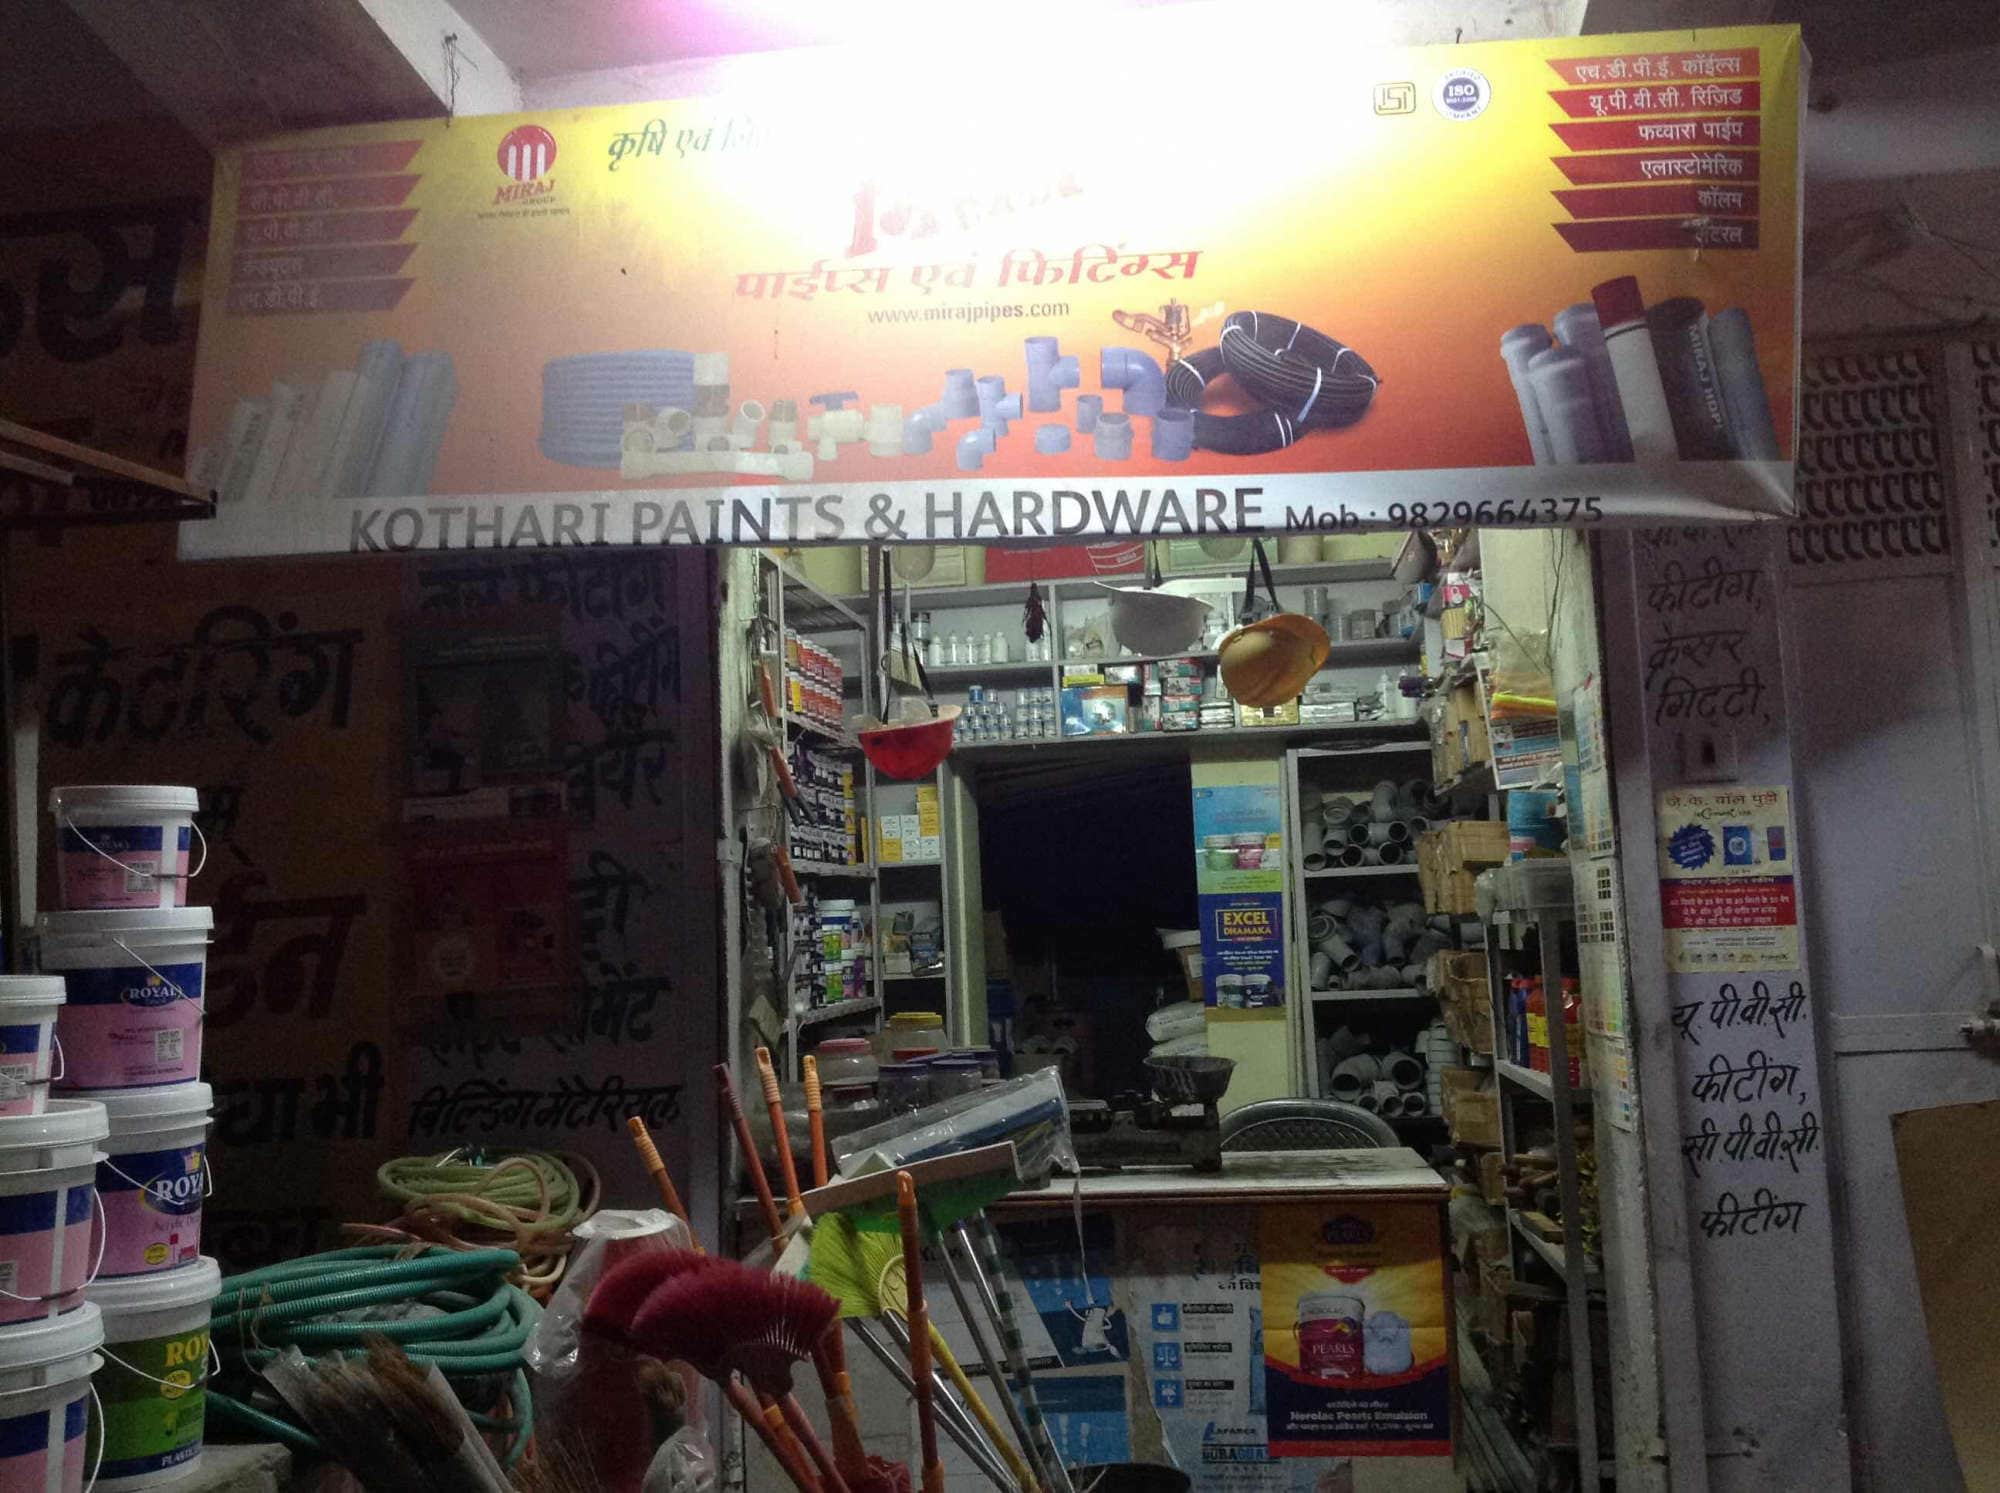 Top 50 Legrand Mosaic Wiring Accessory Dealers In Madri Industrial Accessories Area Udaipur Rajasthan